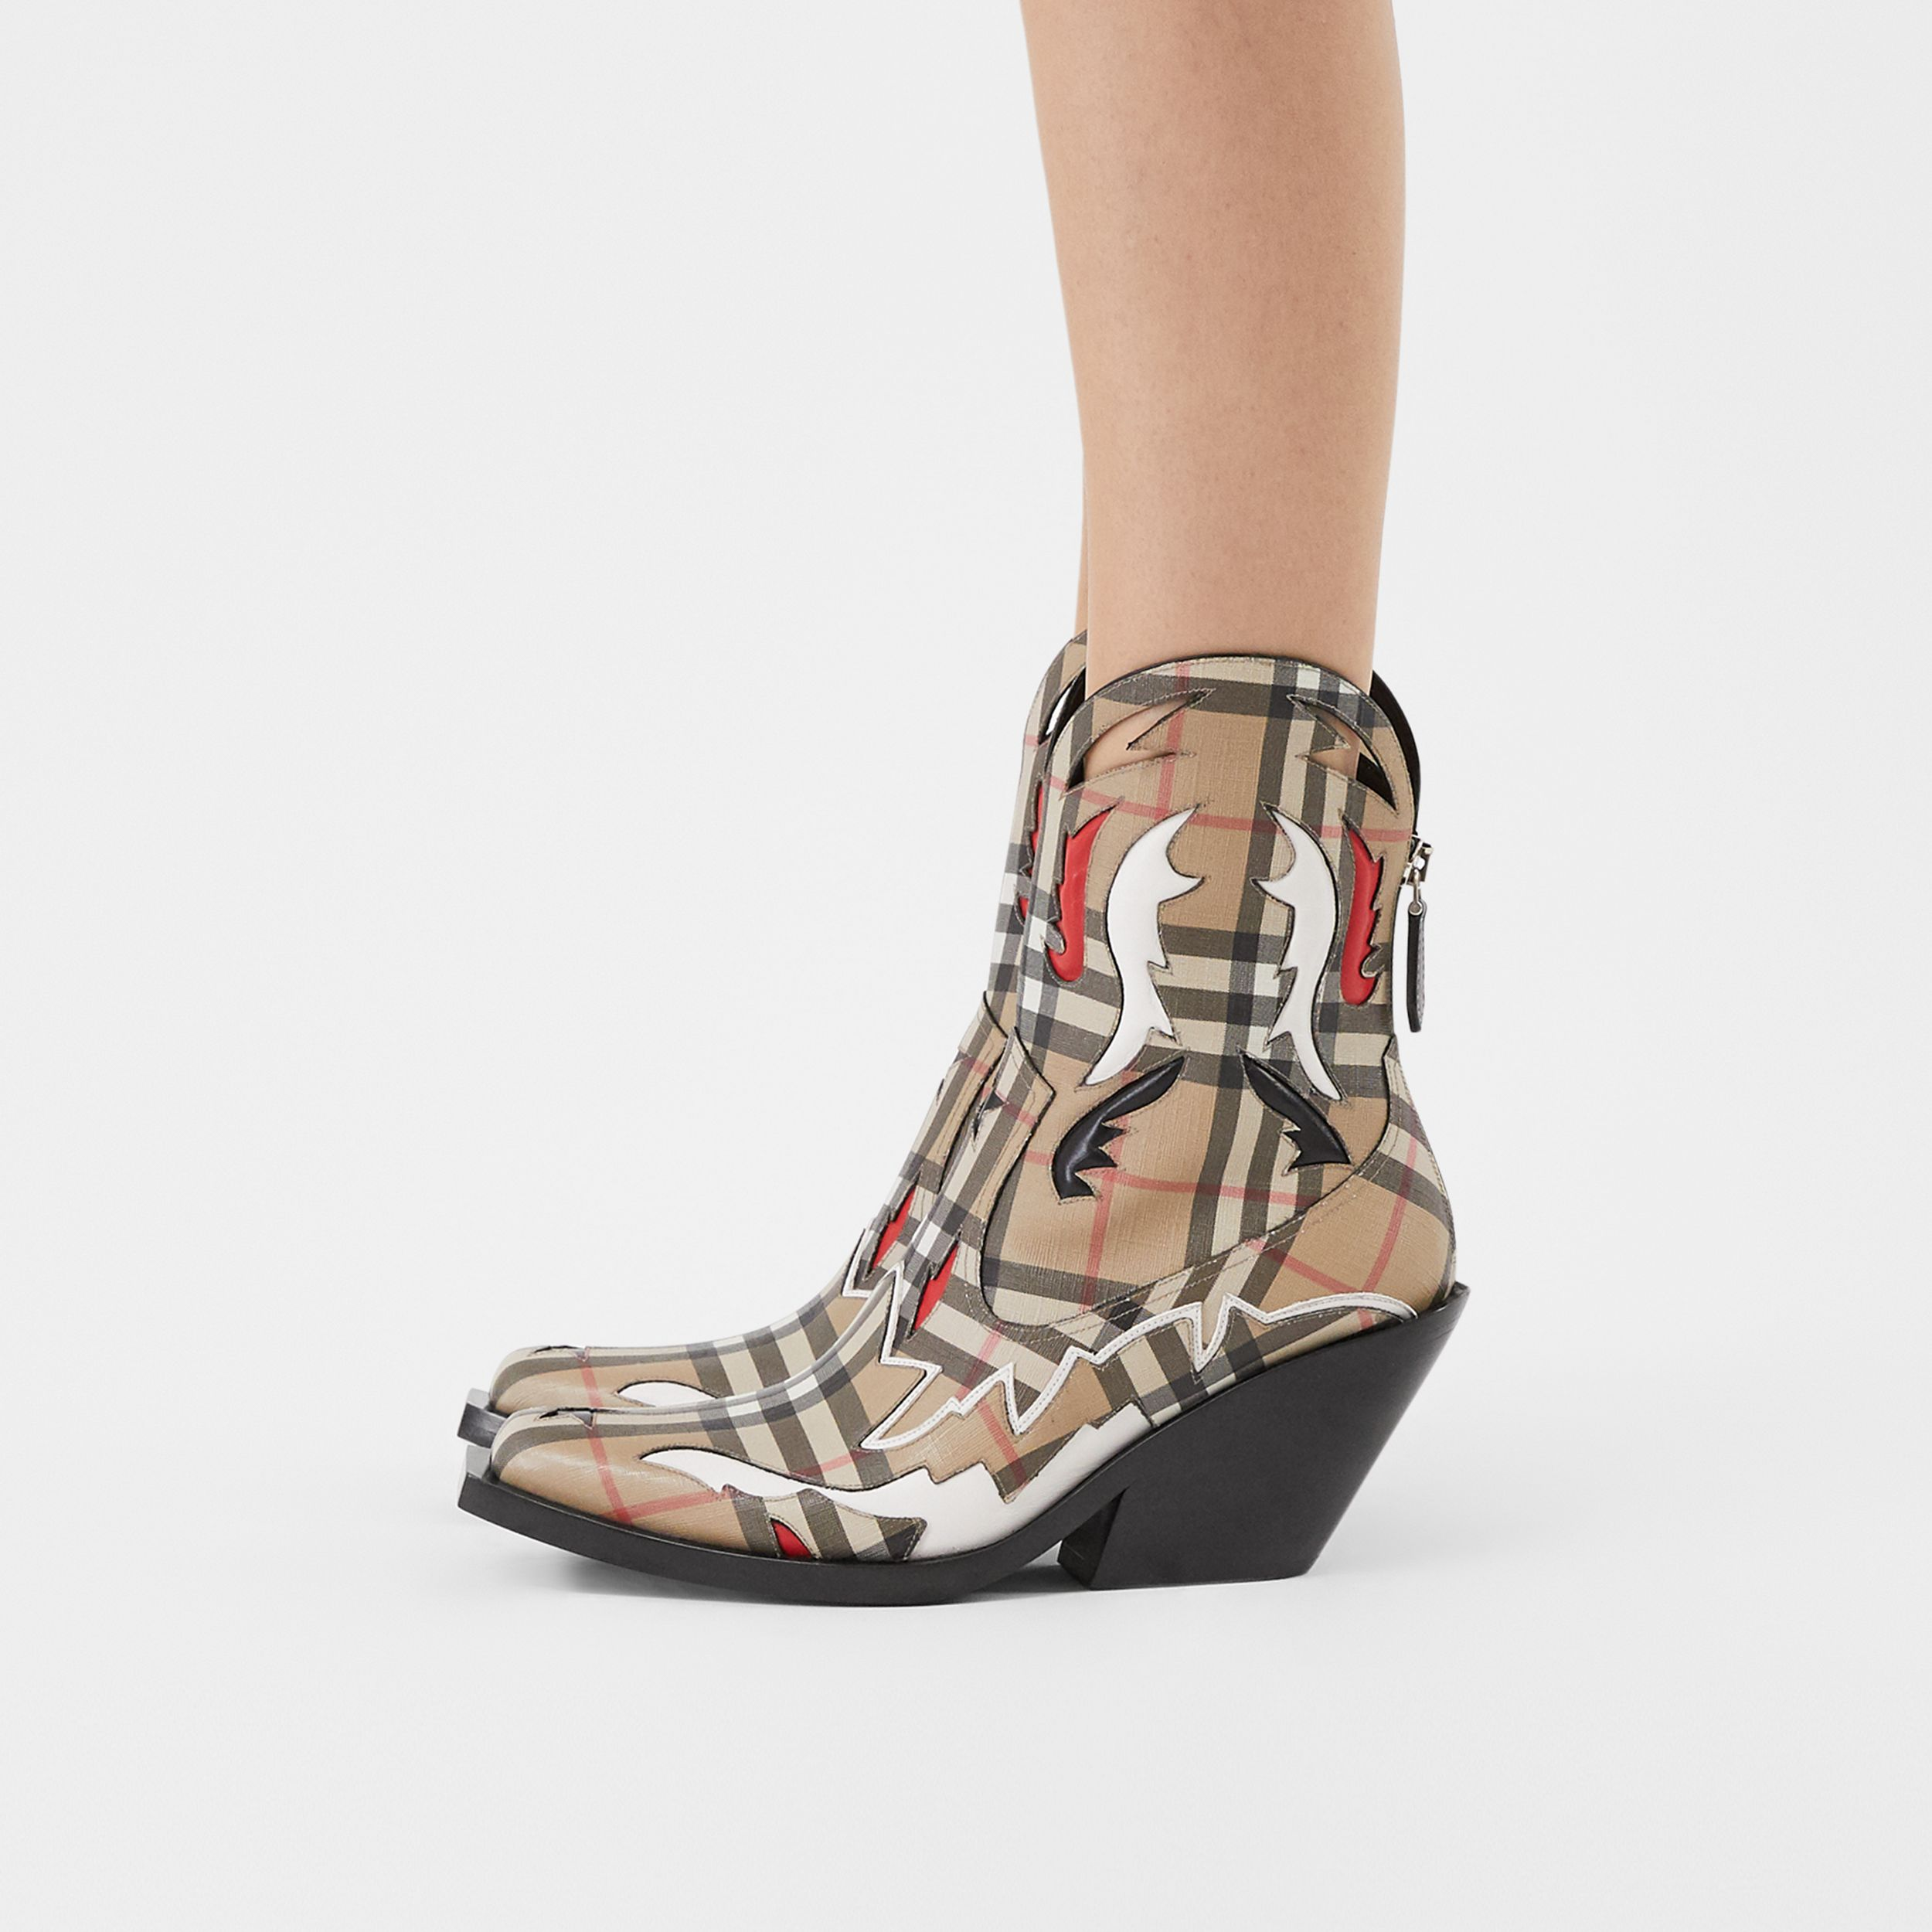 Topstitch Appliqué Vintage Check E-canvas Boots in Archive Beige - Women | Burberry United States - 3